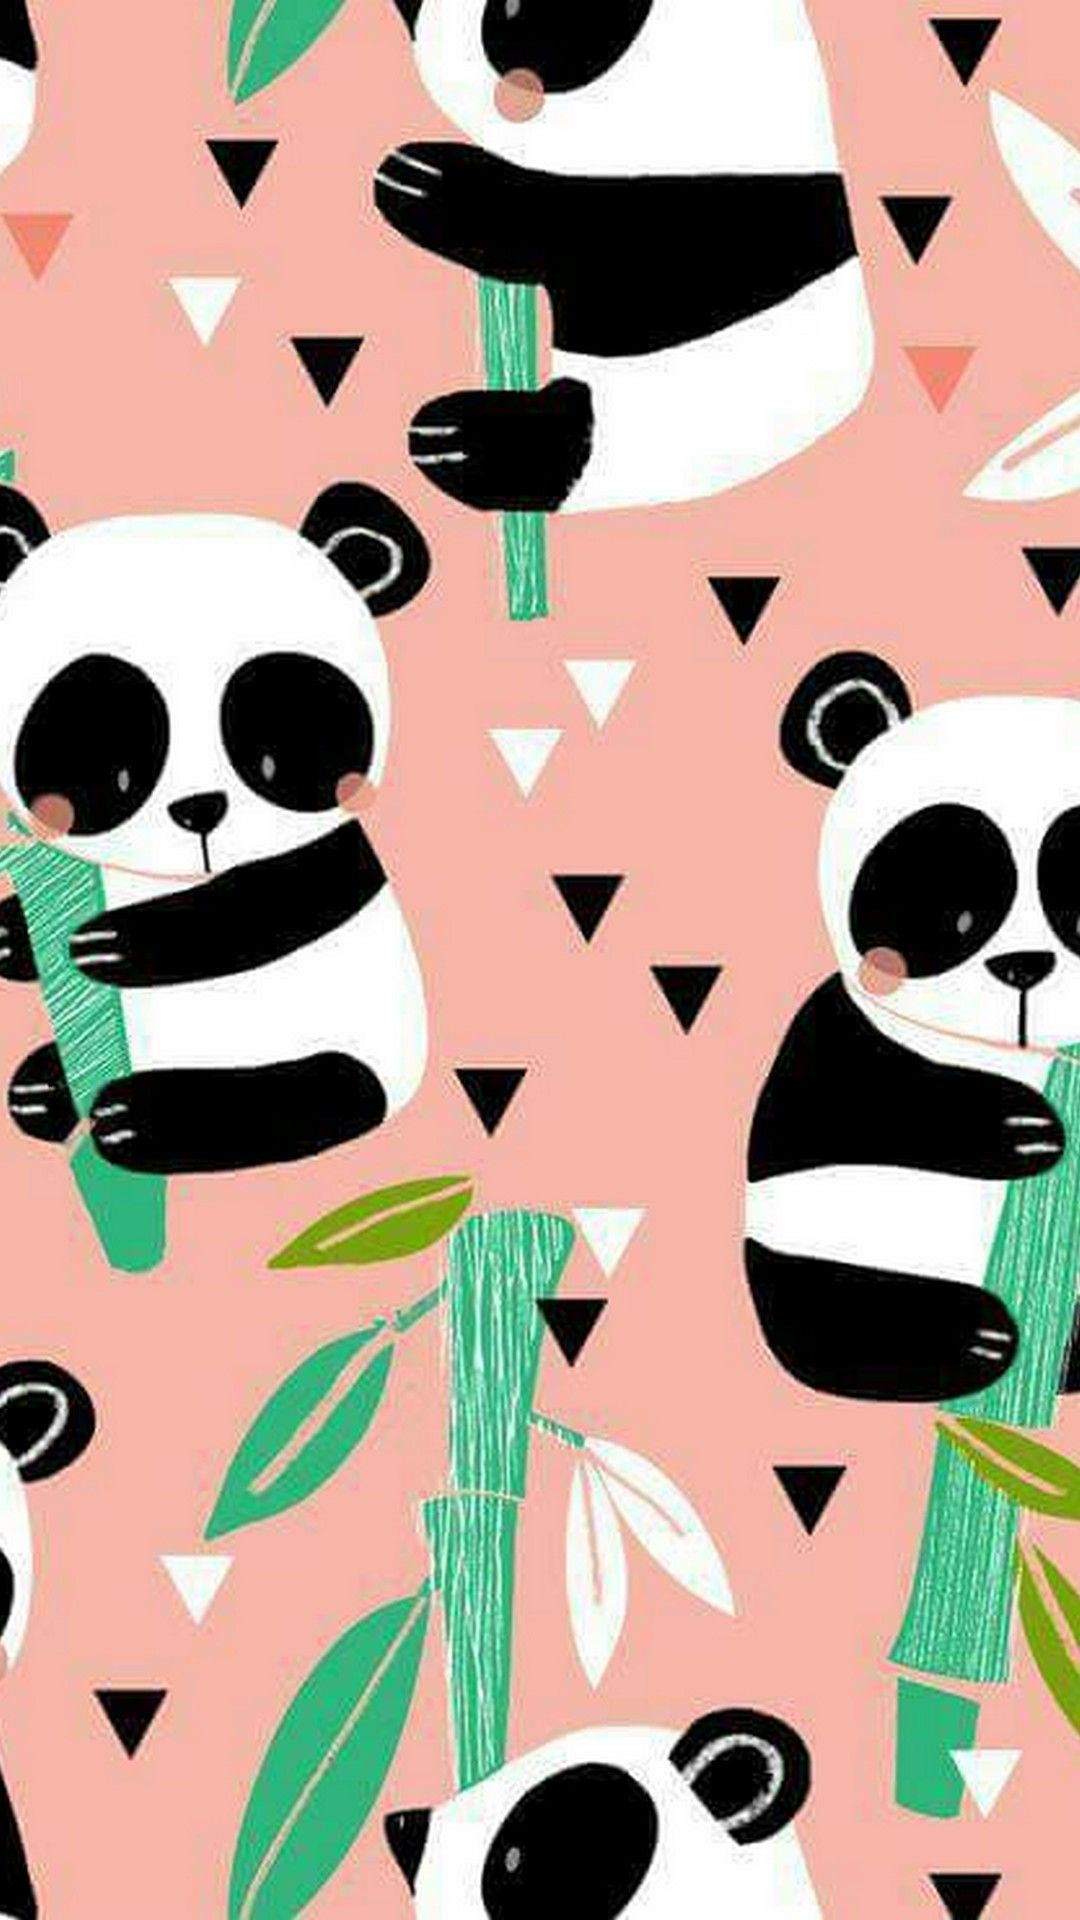 Baby Panda Background For Android Best Hd Wallpapers Panda Background Panda Wallpapers Panda Bears Wallpaper